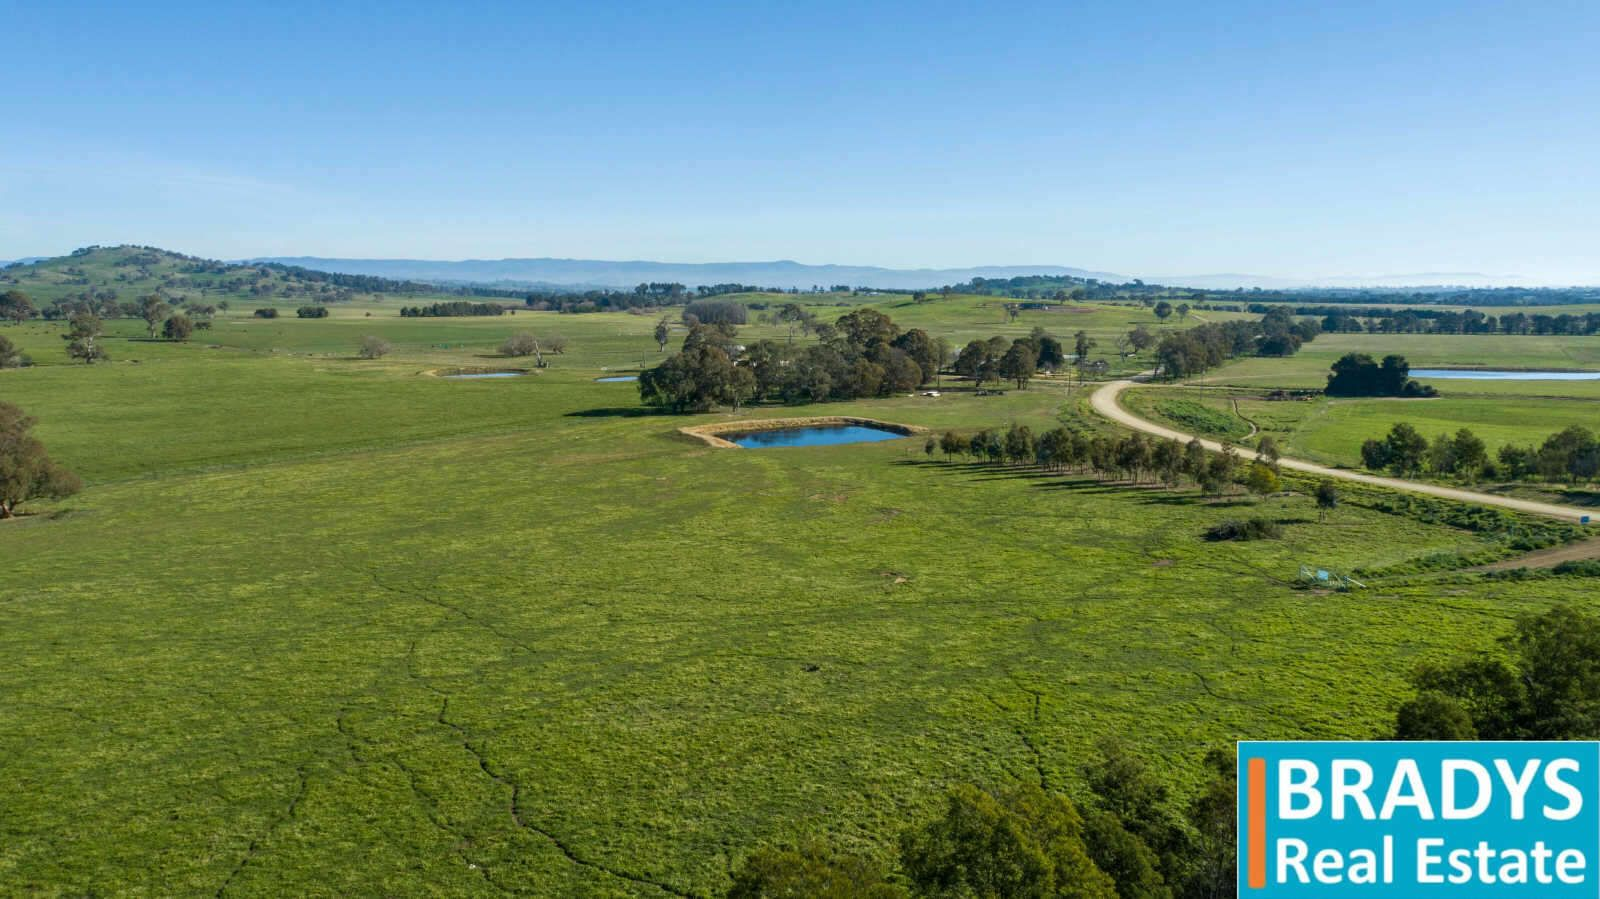 Lot 4/360 Bushs Lane, Murrumbateman NSW 2582, Image 0